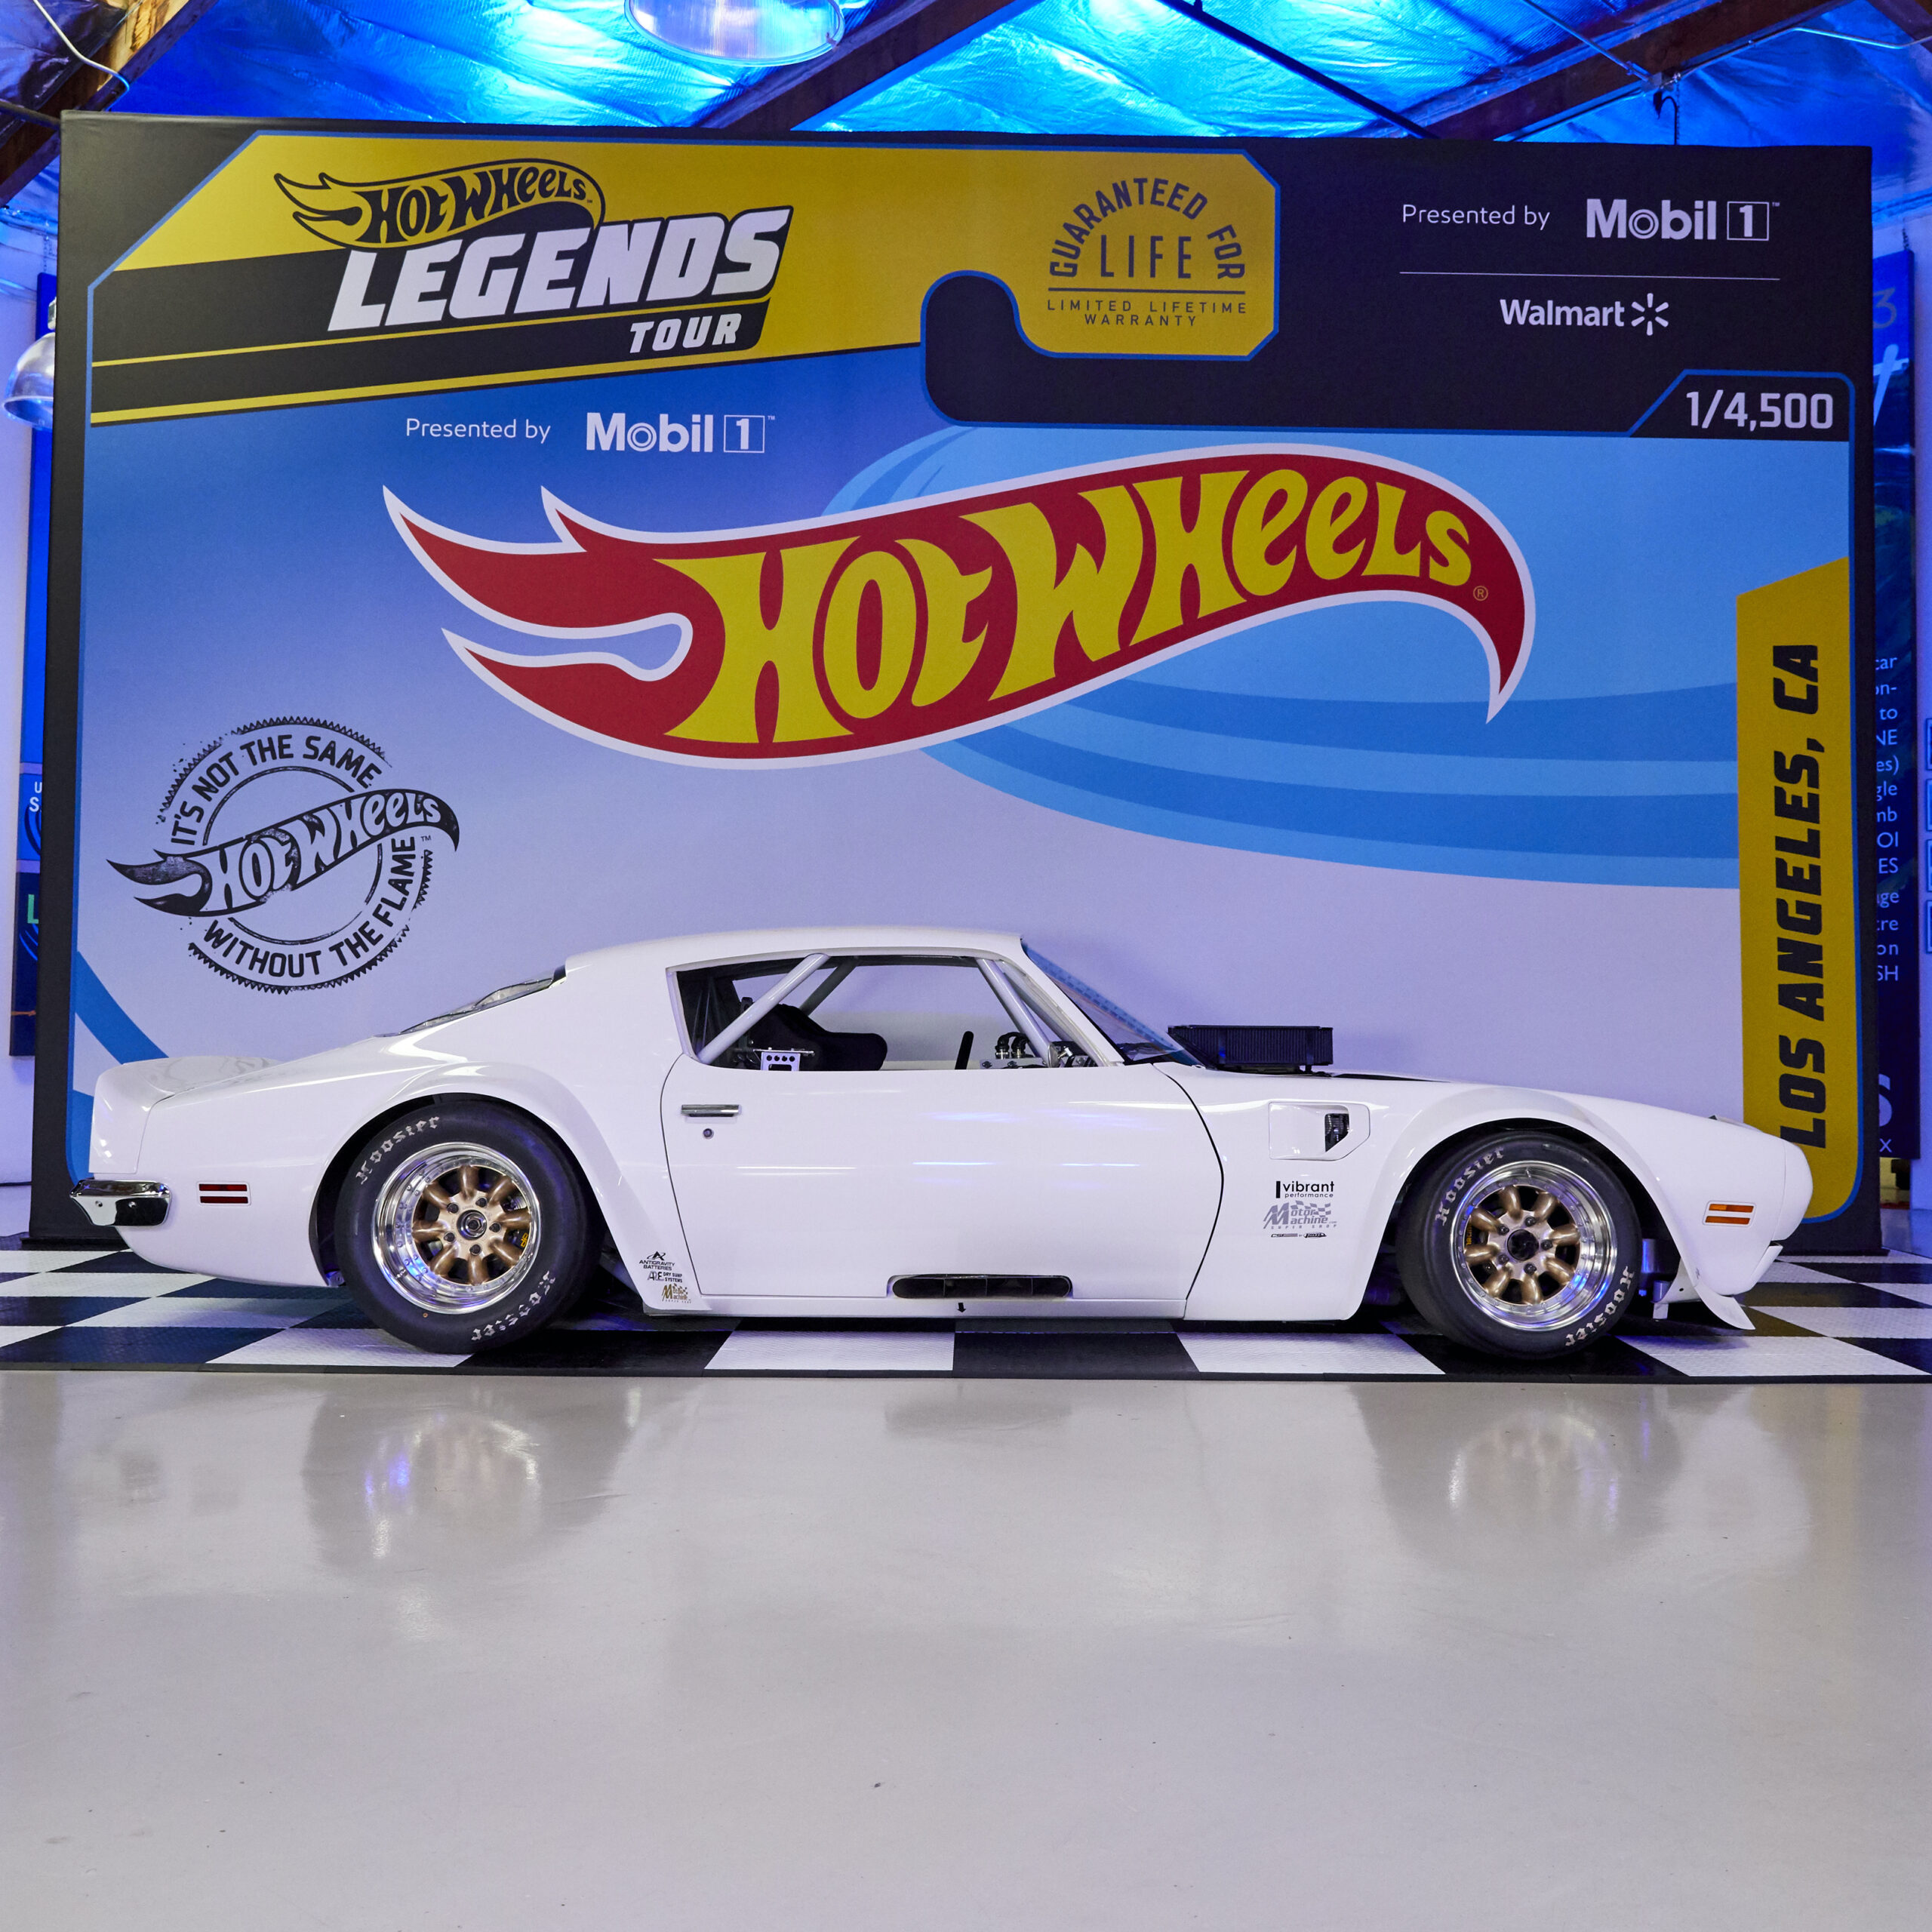 Hot Wheels Legends Tour announces winner